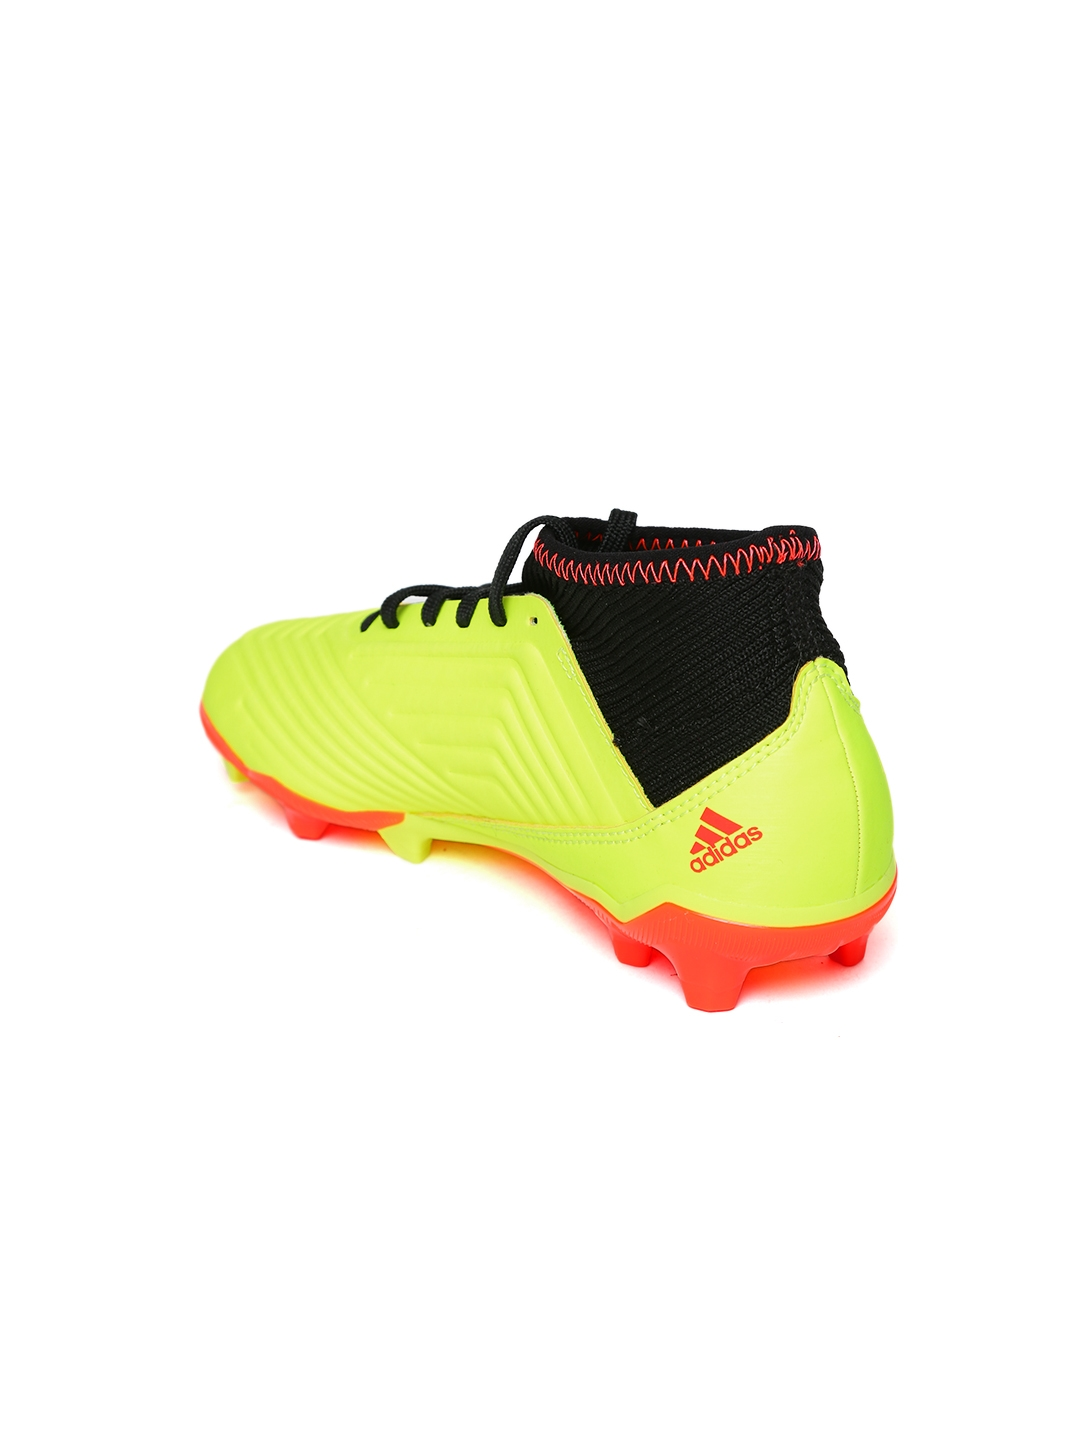 ebed21bbb27 Buy ADIDAS Boys Neon Yellow Predator 18.3 Firm Ground Football Shoes ...